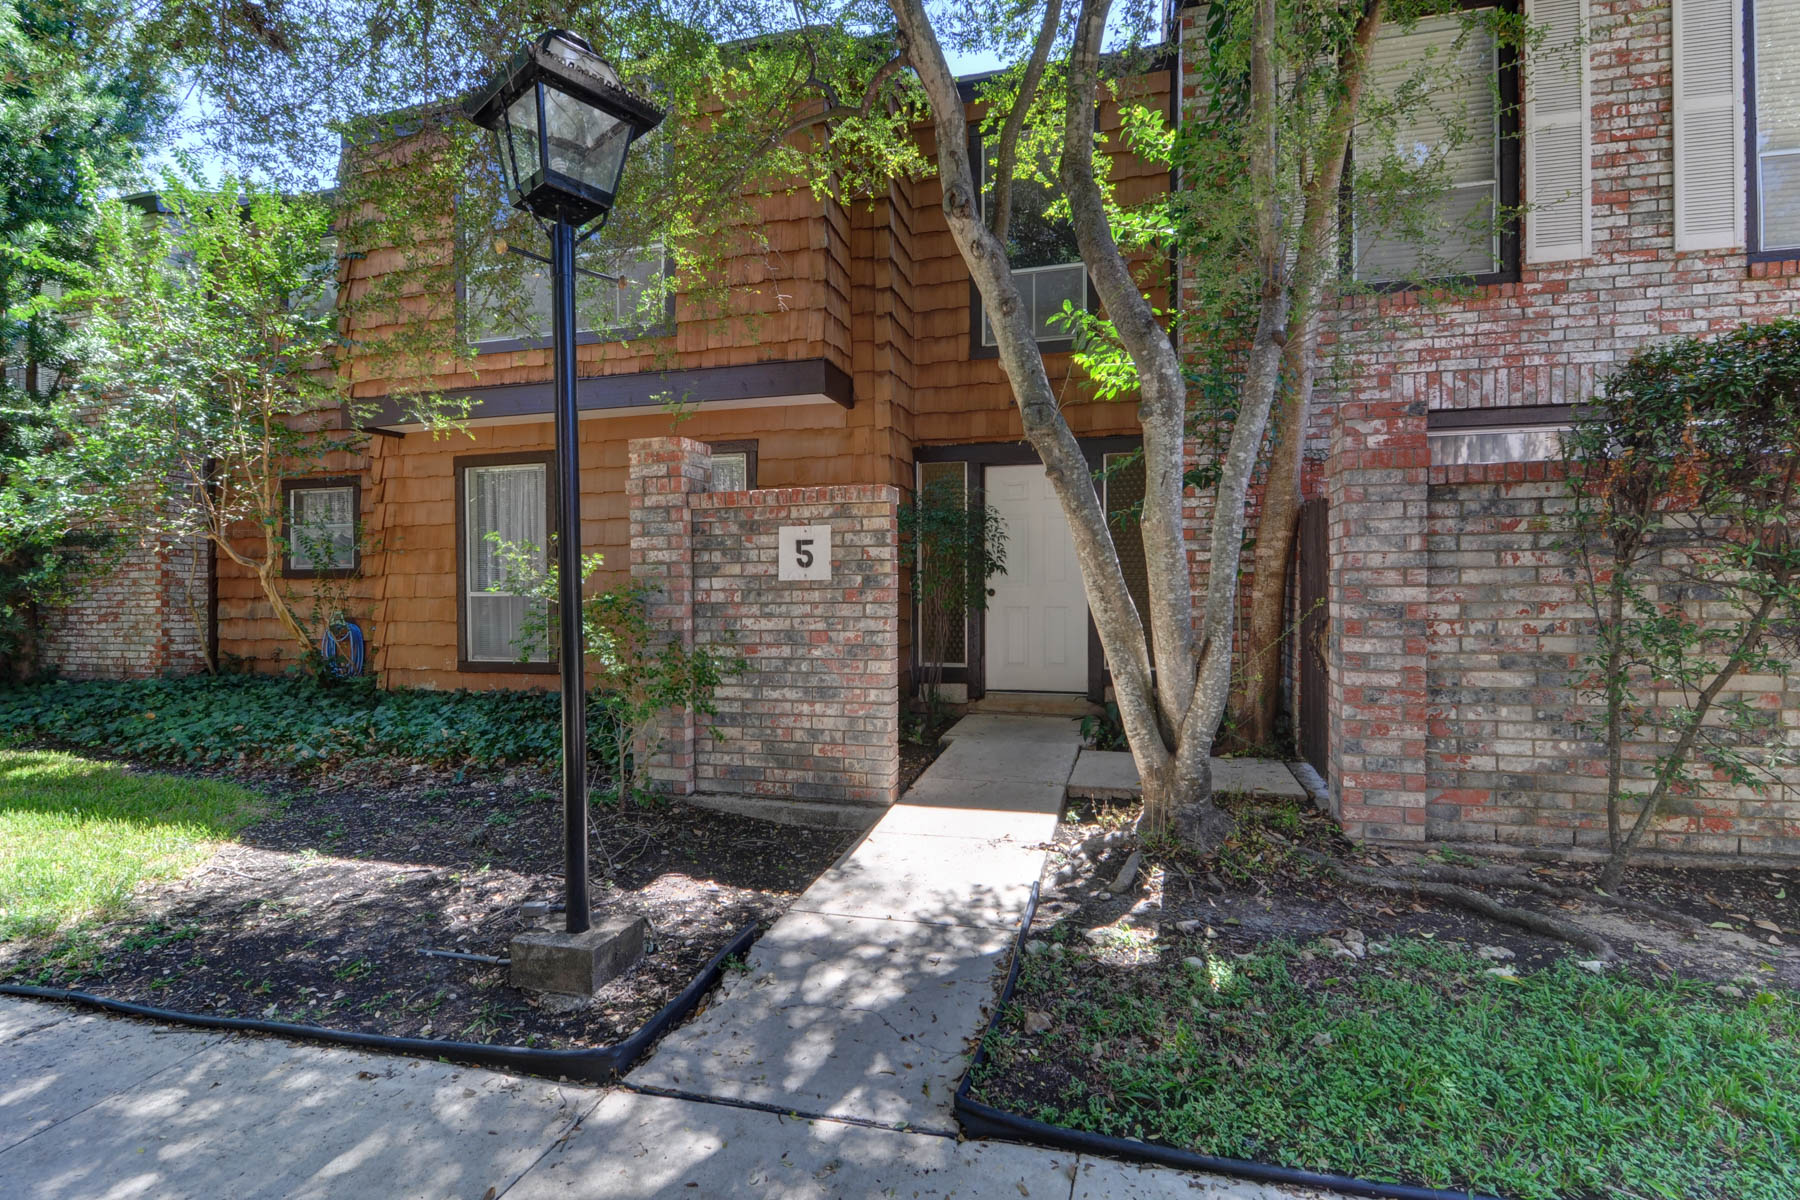 Condominium for Sale at Wonderful Property in Barrington 3803 Barrington St 5C San Antonio, Texas 78217 United States